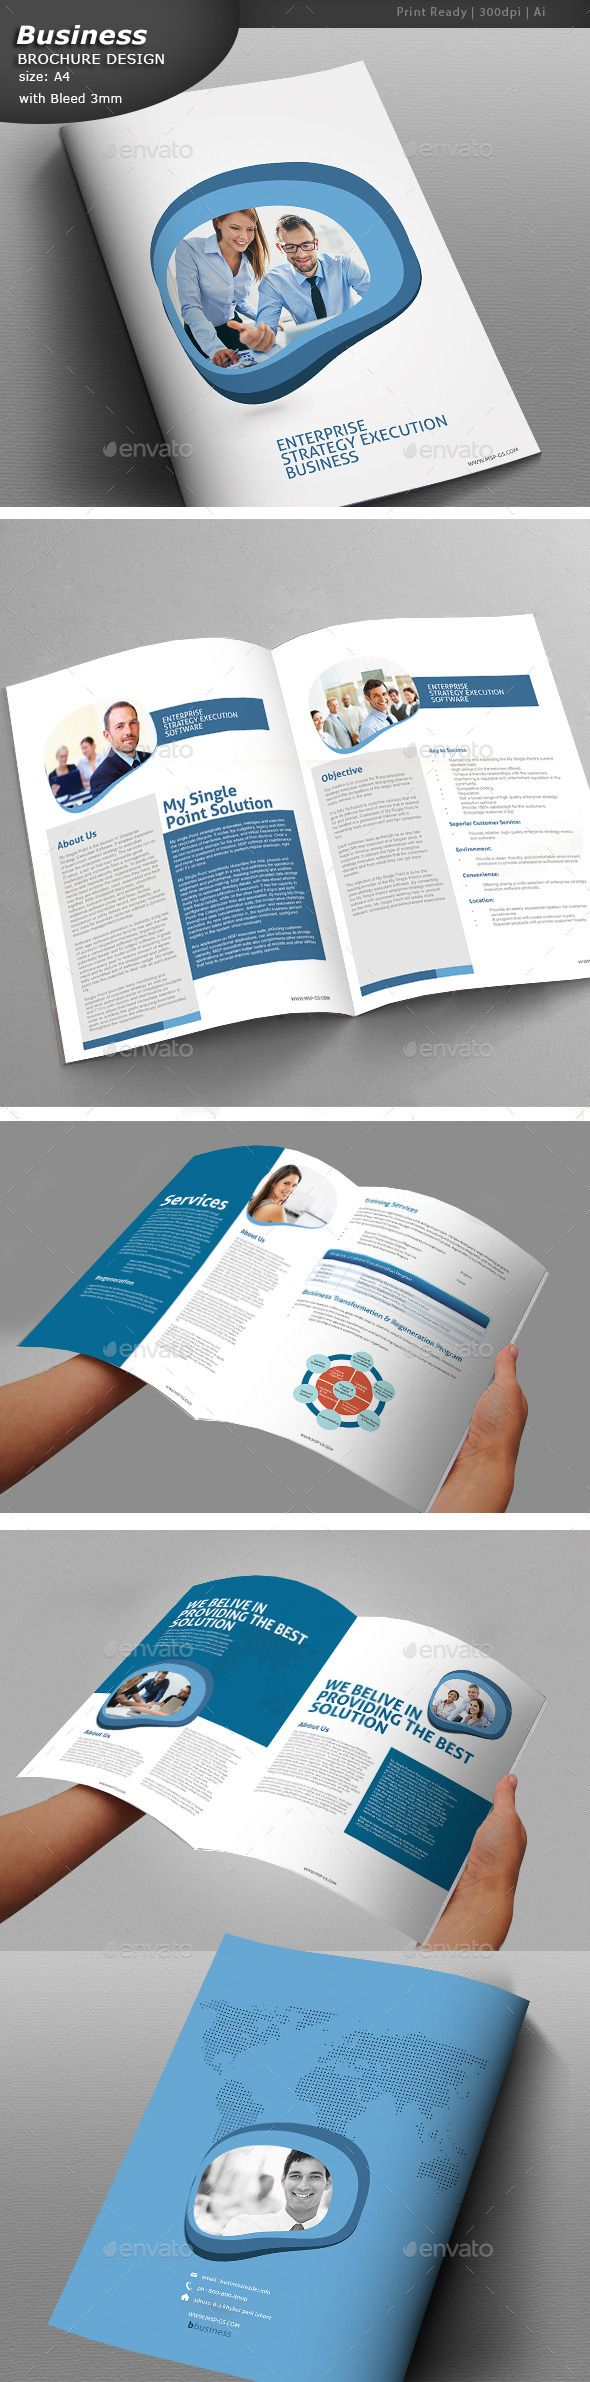 Clean Business Brochure   Fully editable brochure template     Clean Business Brochure   Fully editable brochure template   brochure   design  printDesign  template  BusinessBrochure  professional   ProfessionalBrochure